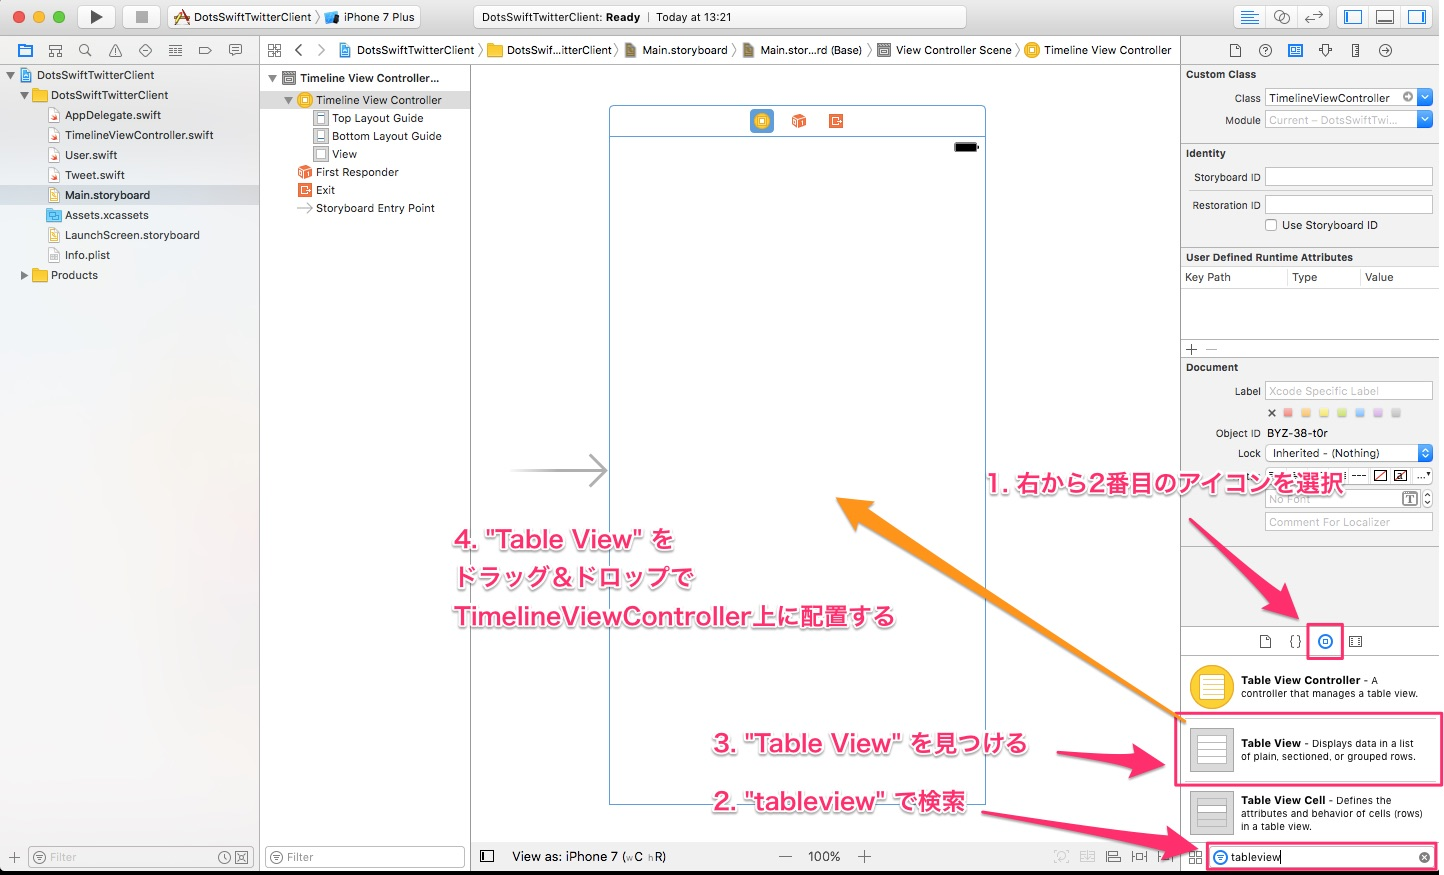 tableview配置.jpg